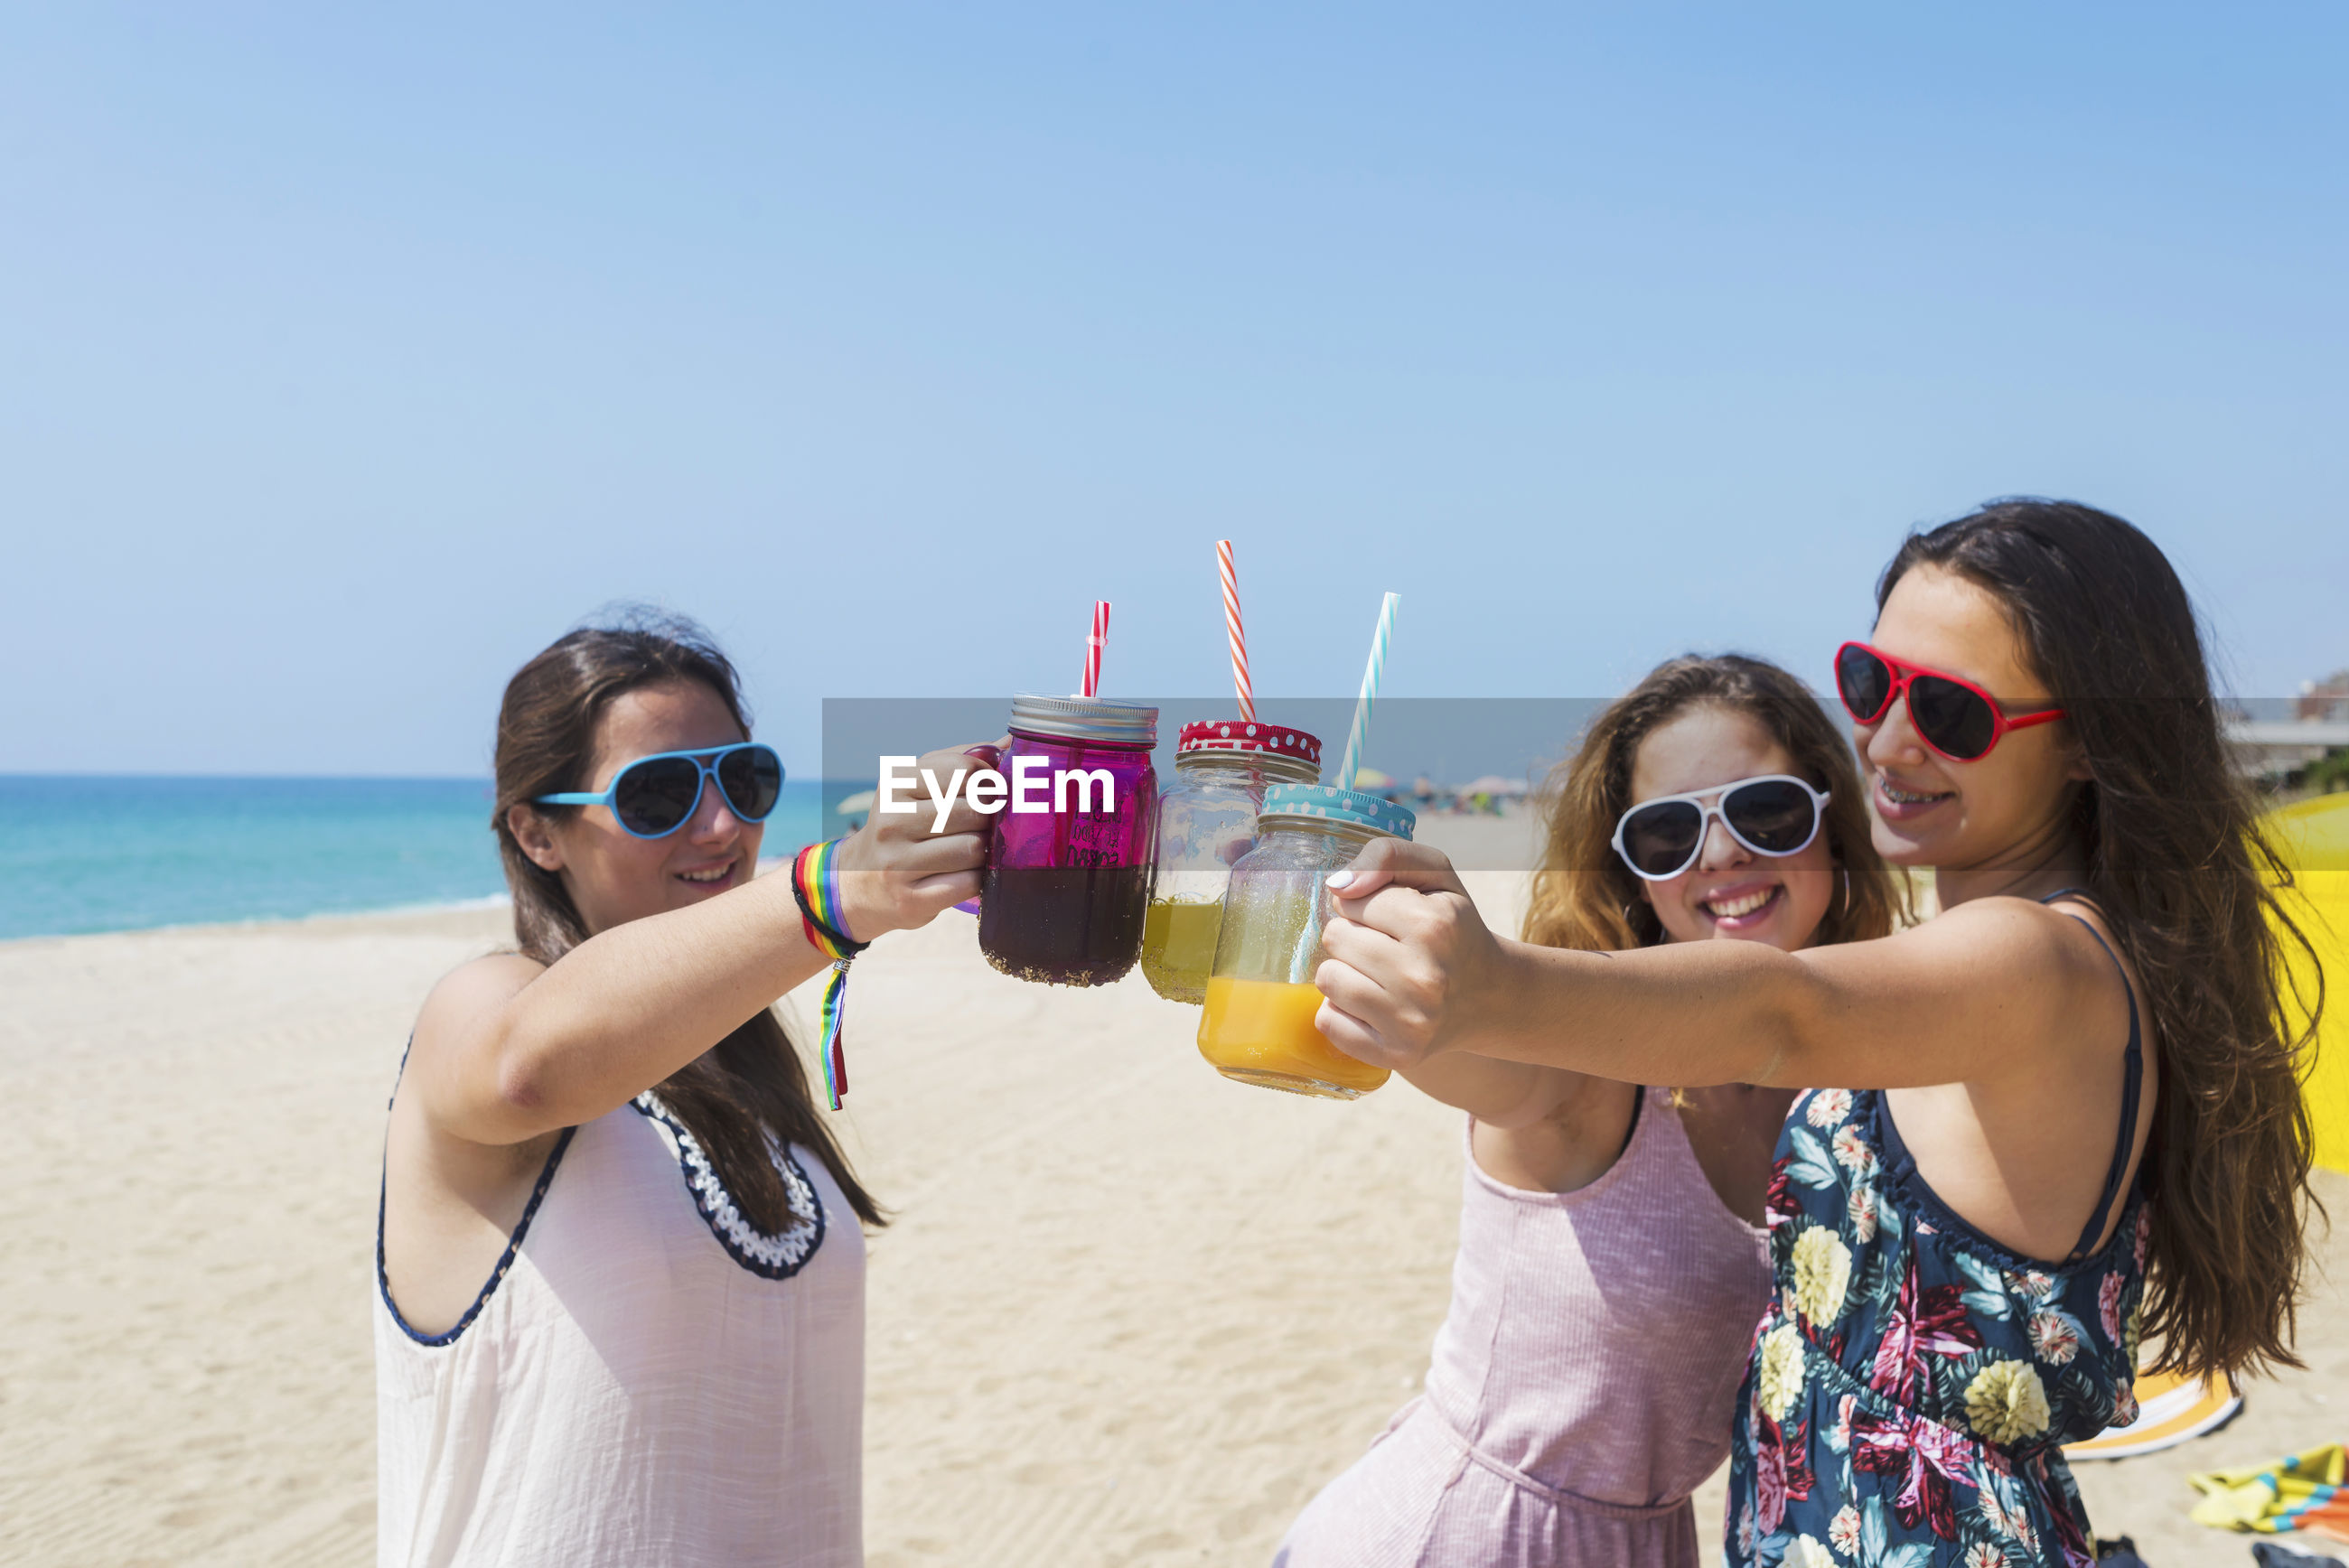 Smiling woman and girls toasting while holding juice in glasses at beach against sky